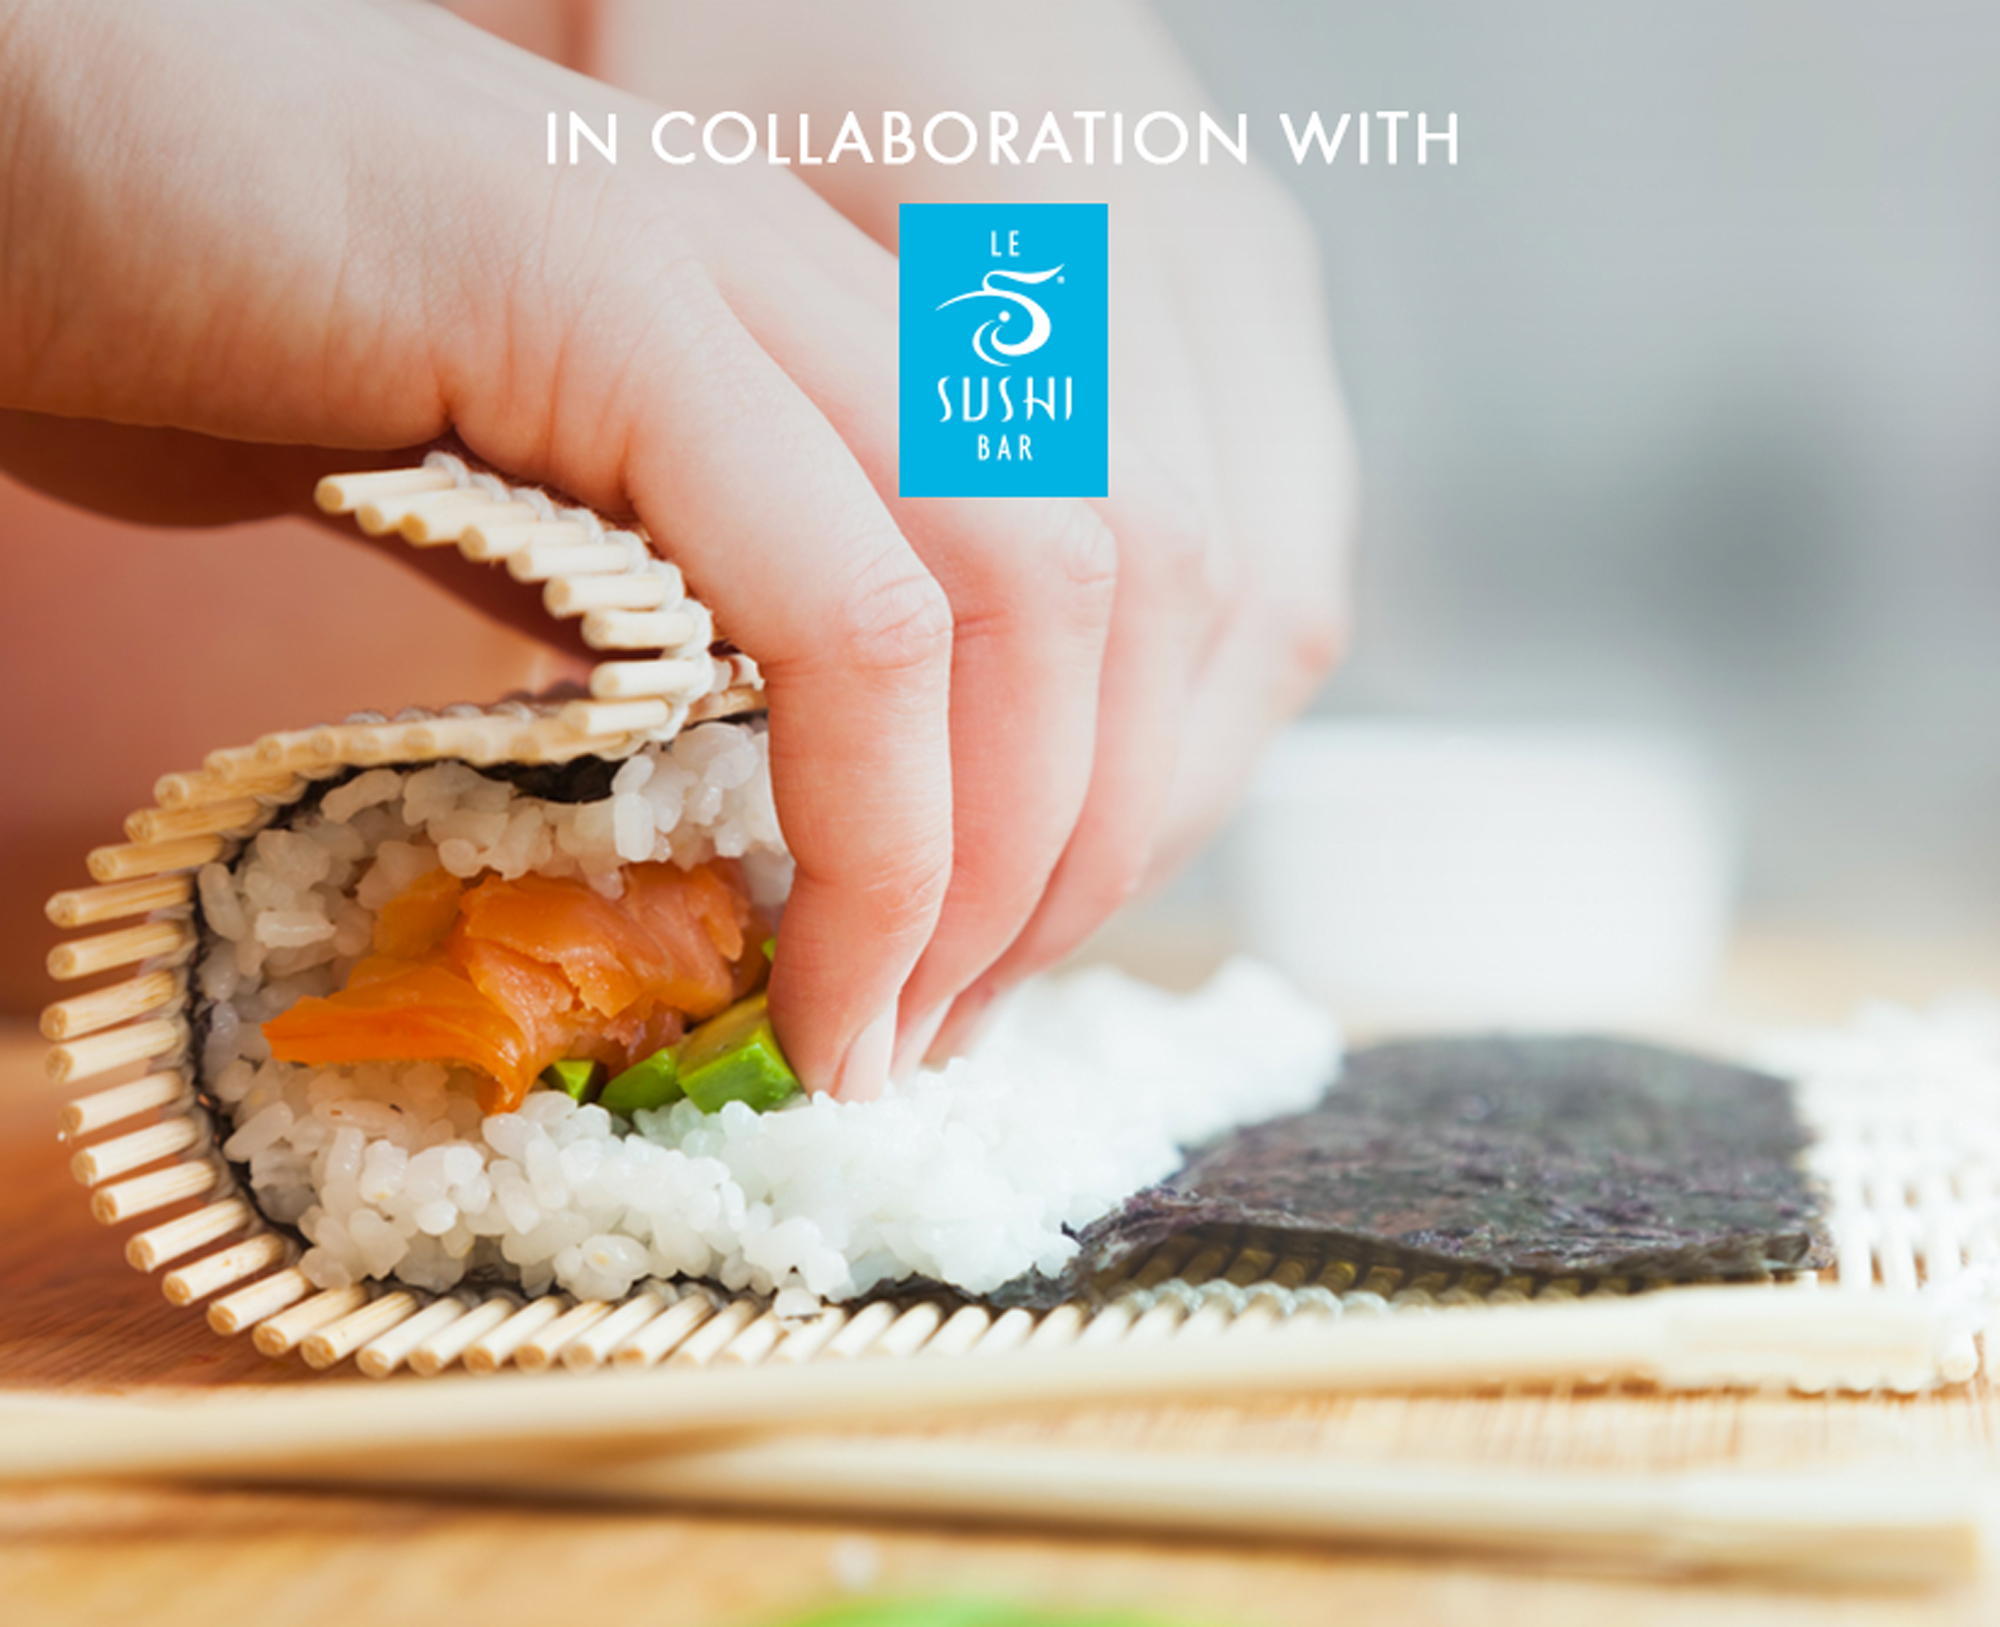 The art of rolling sushi in collaboration with Le Sushi Bar